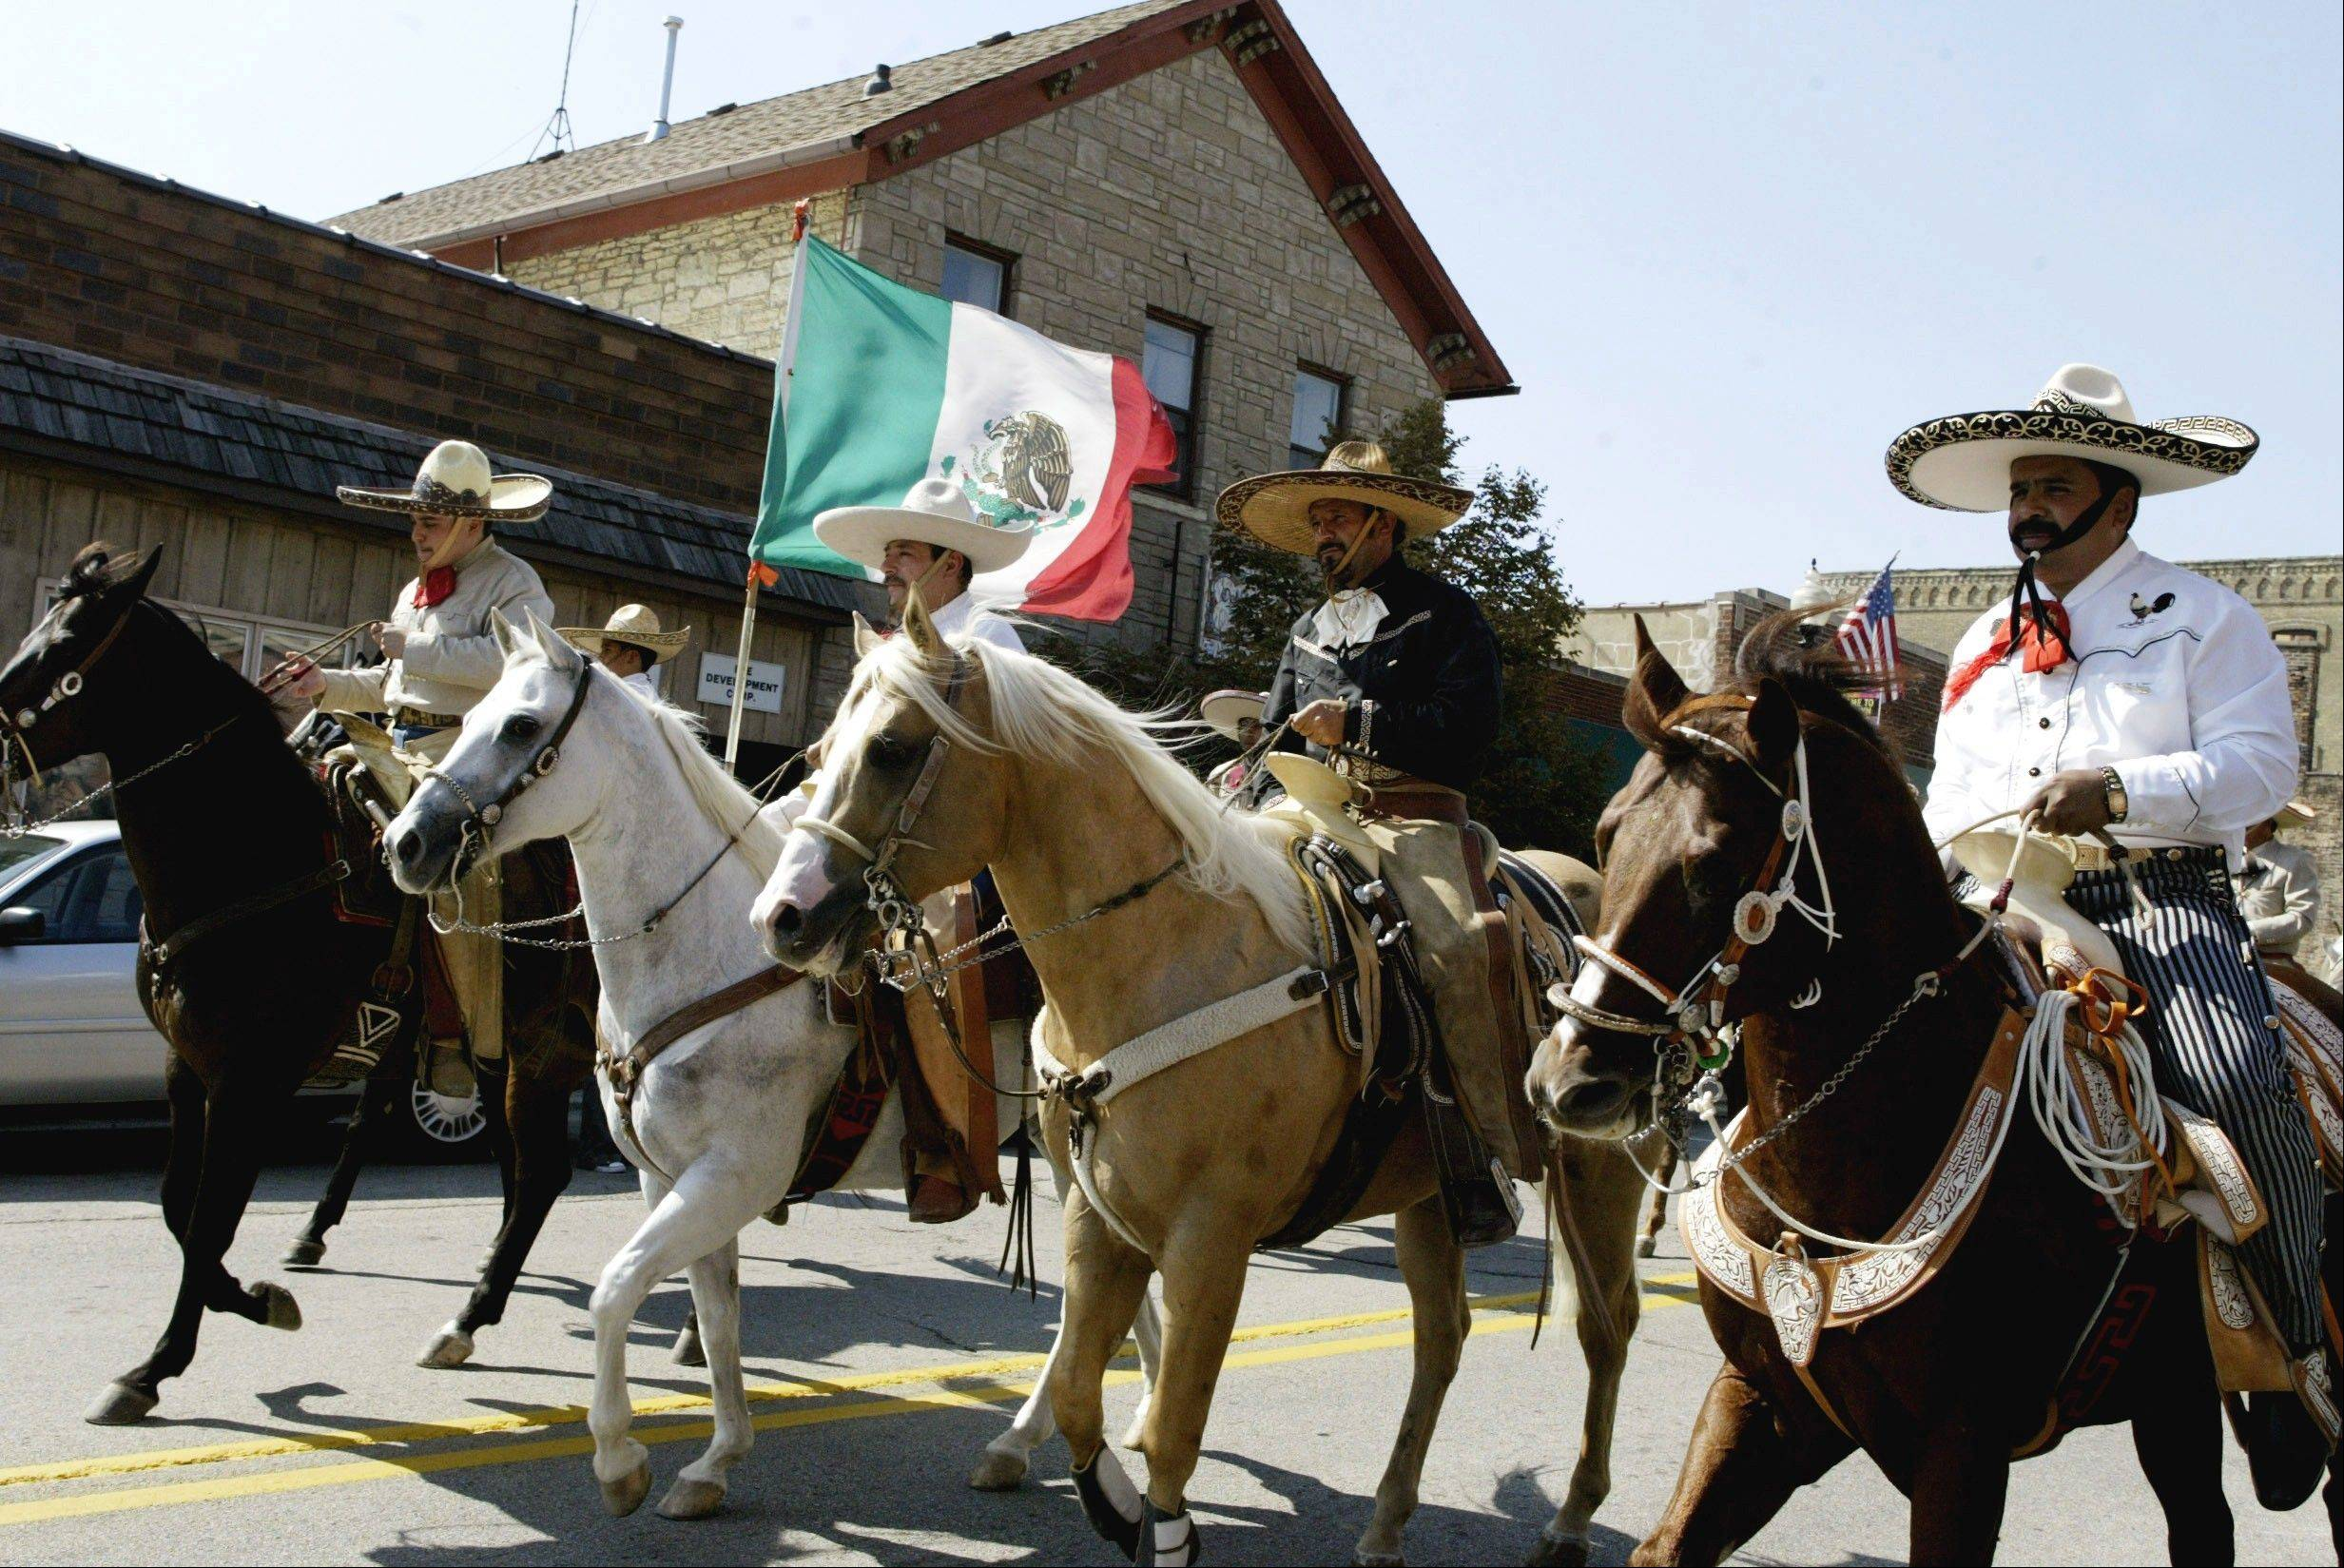 Horses are a highlight of the Mexican Independence Day parade in downtown West Chicago starting at noon Sunday, Sept. 18.